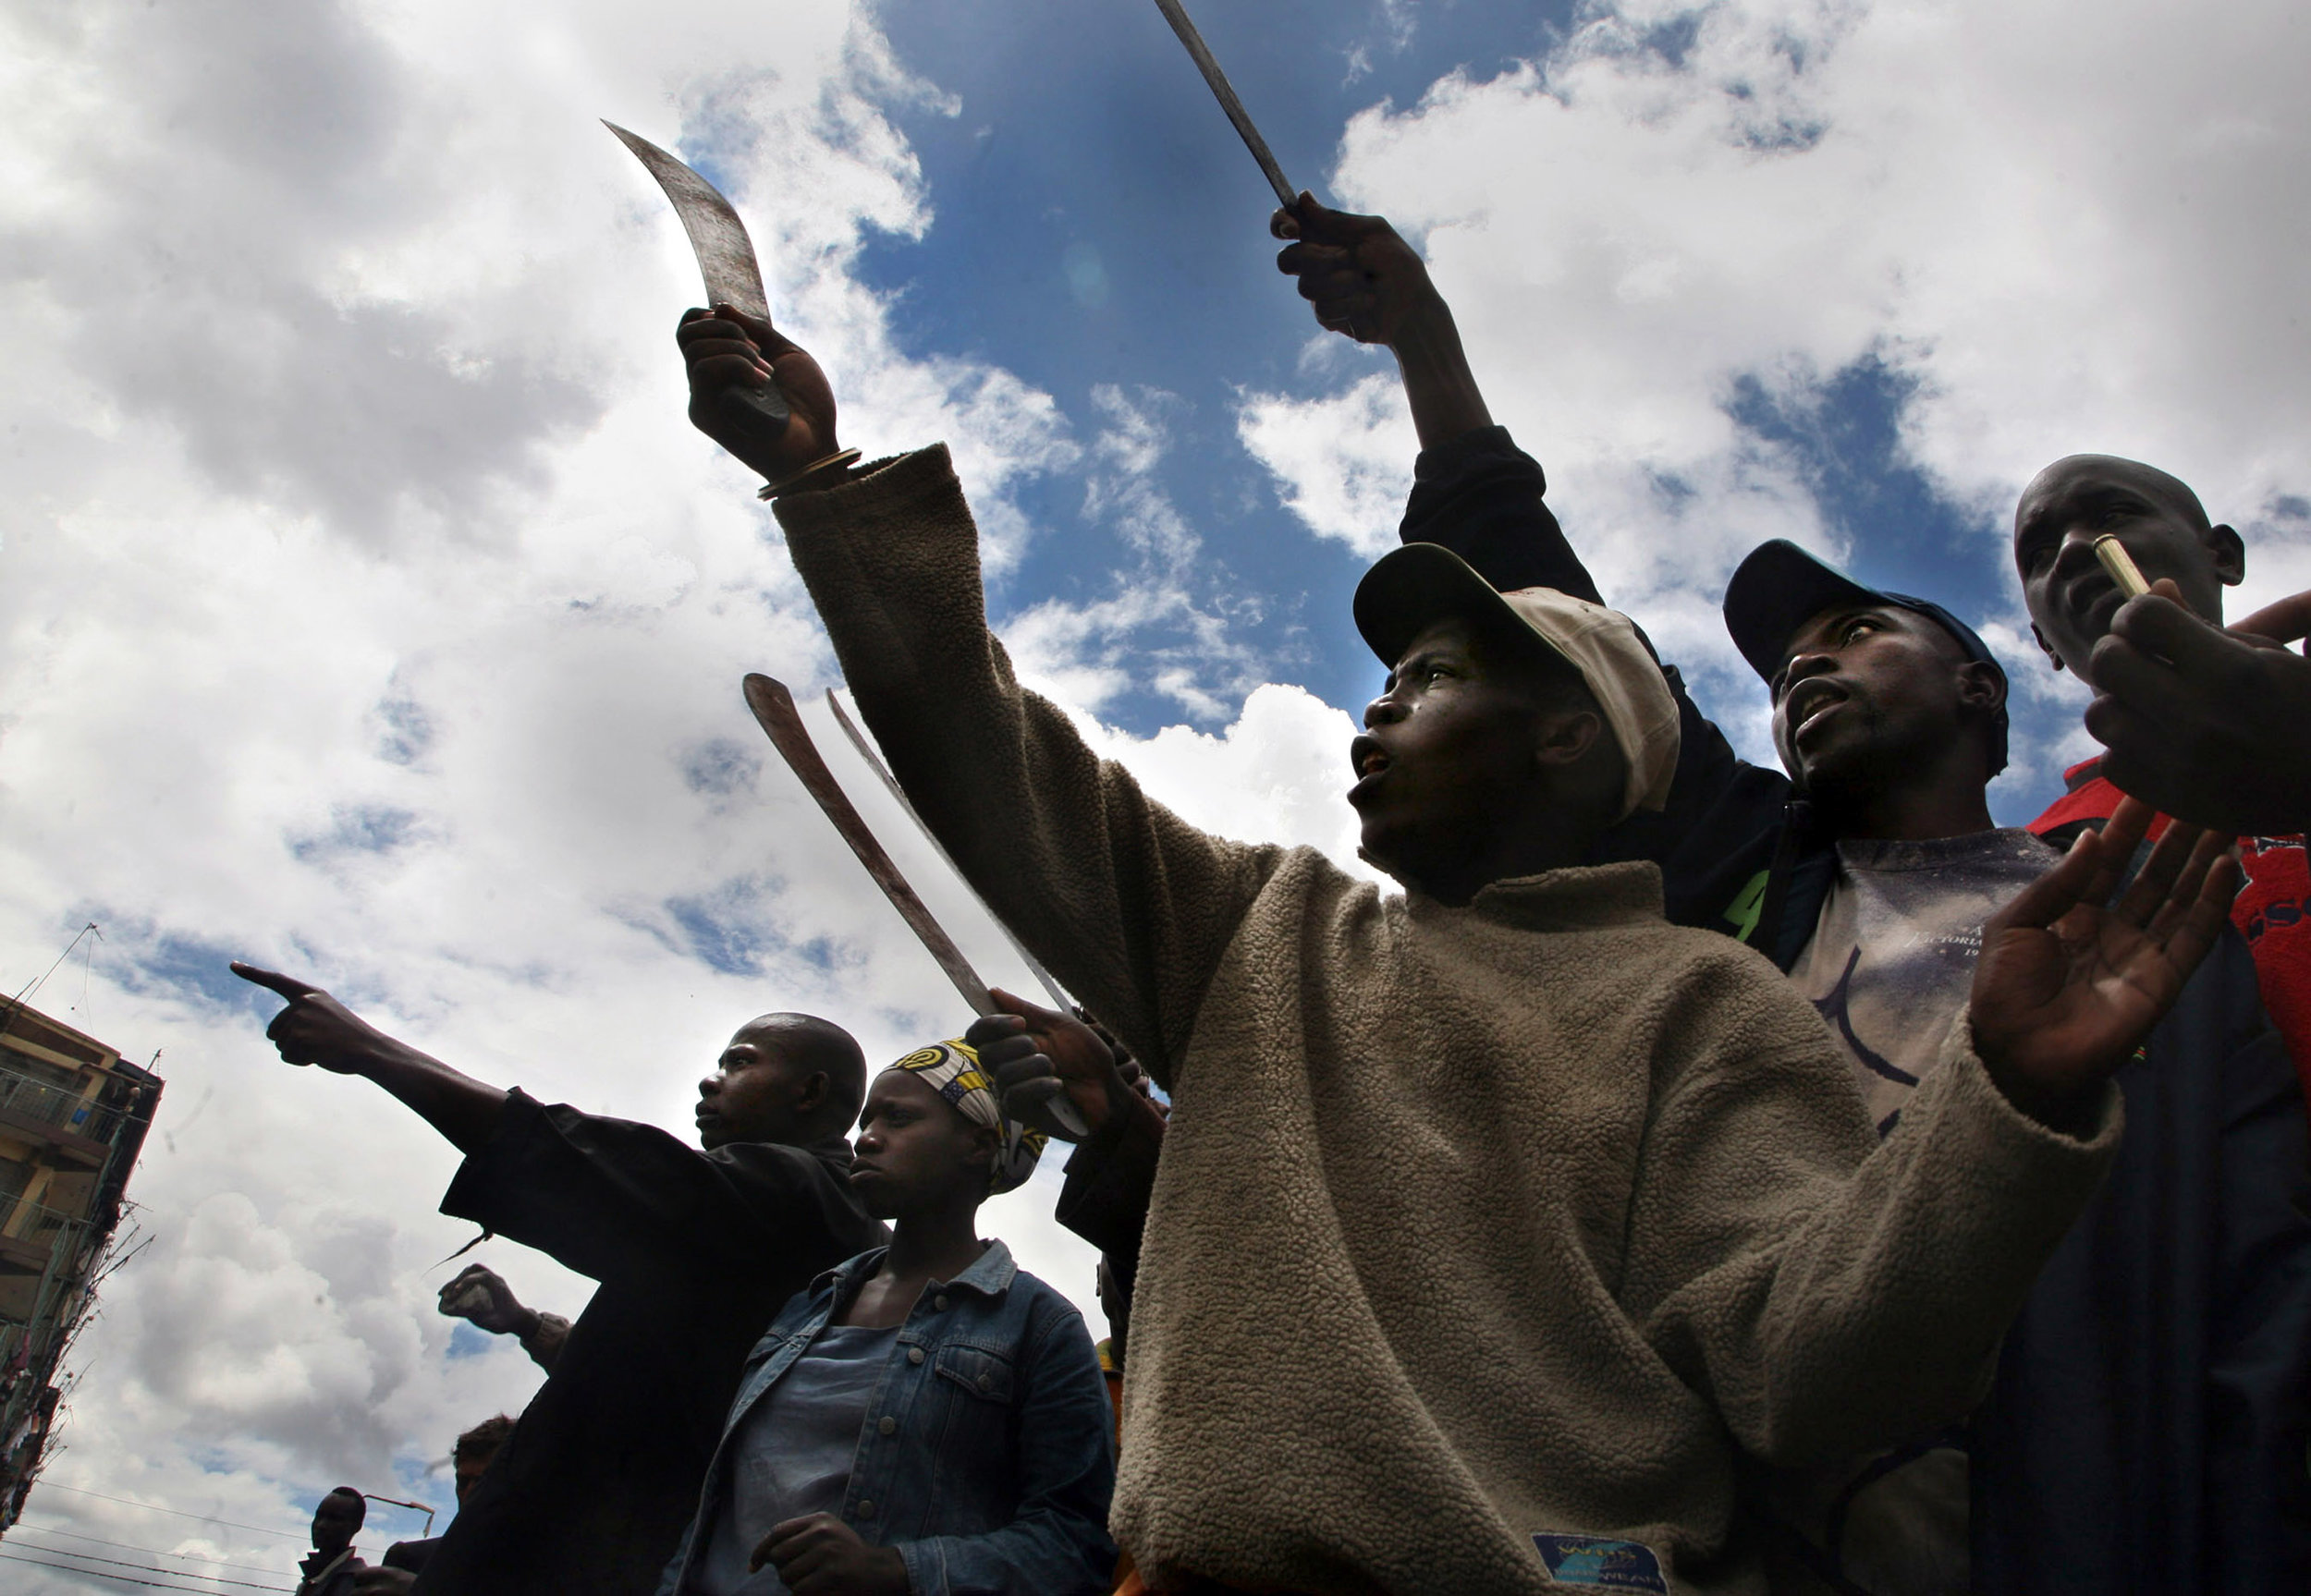 ODM supporters hold machetes, stones, and sticks as they shout towards Kikuyu residents of the Mathare slums during another day of ethnic violence in Kenya. Several homes were set ablaze in Mathare during running battles between Kikuyu and Luo ethnic groups.